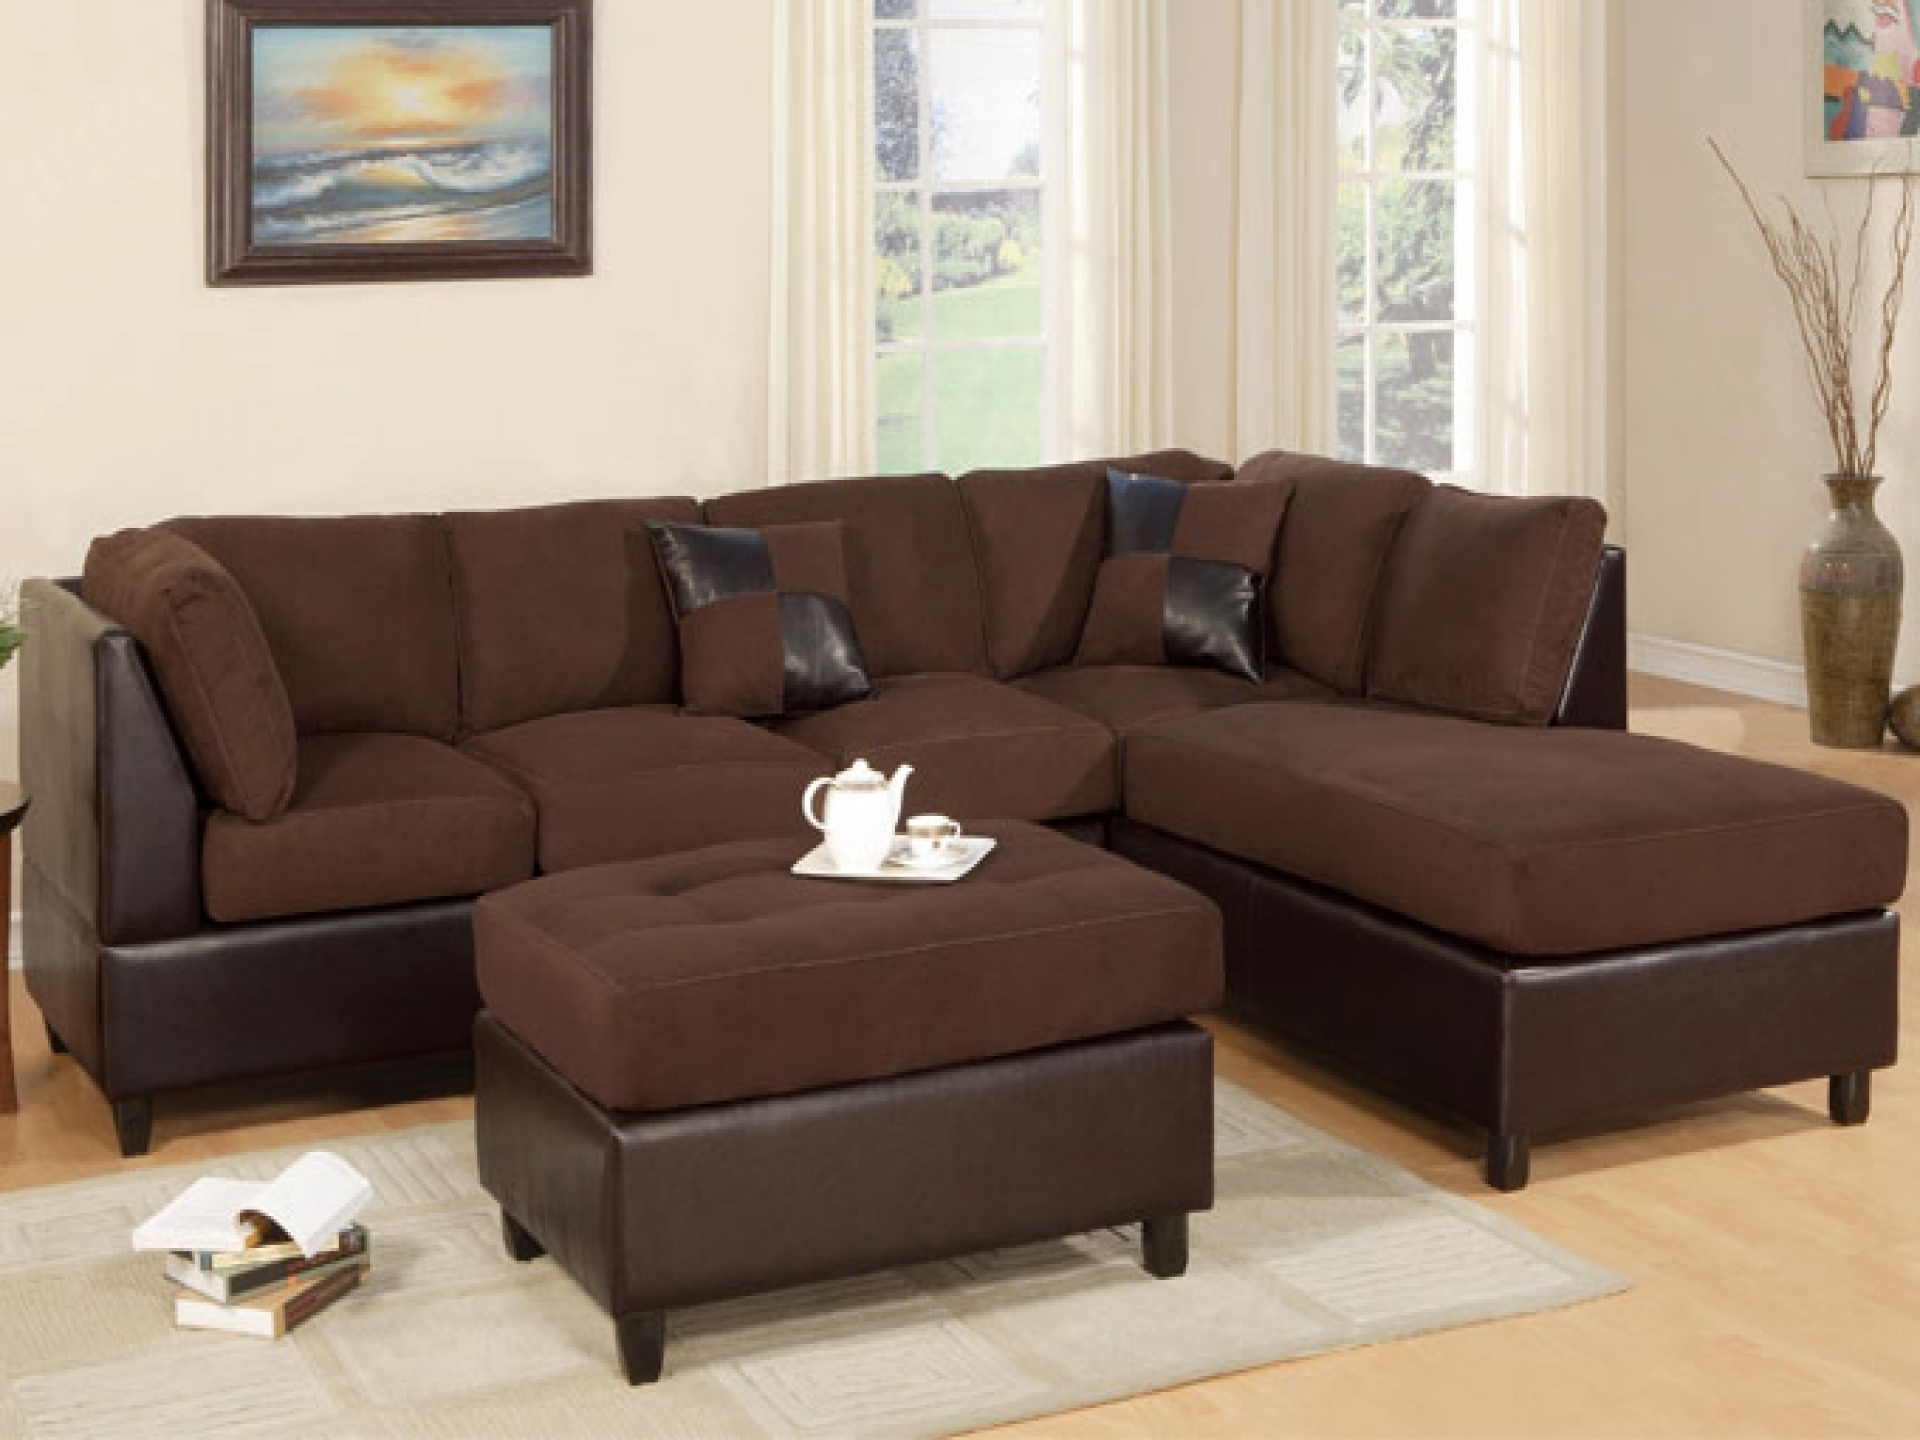 Furniture : Sectional Couch Okc Sectional Sofa Gainesville Fl For 2019 Gainesville Fl Sectional Sofas (Gallery 2 of 20)